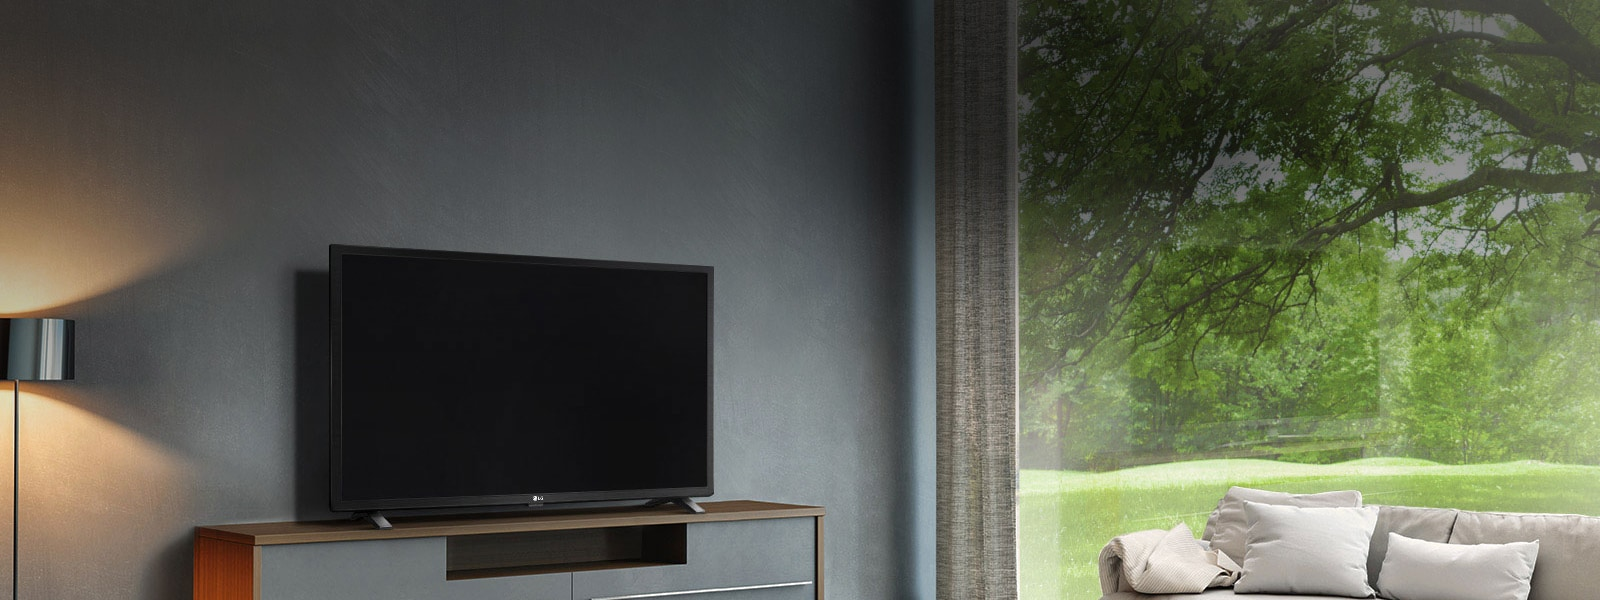 TV-HD-32-LM55-04-Design-Desktop